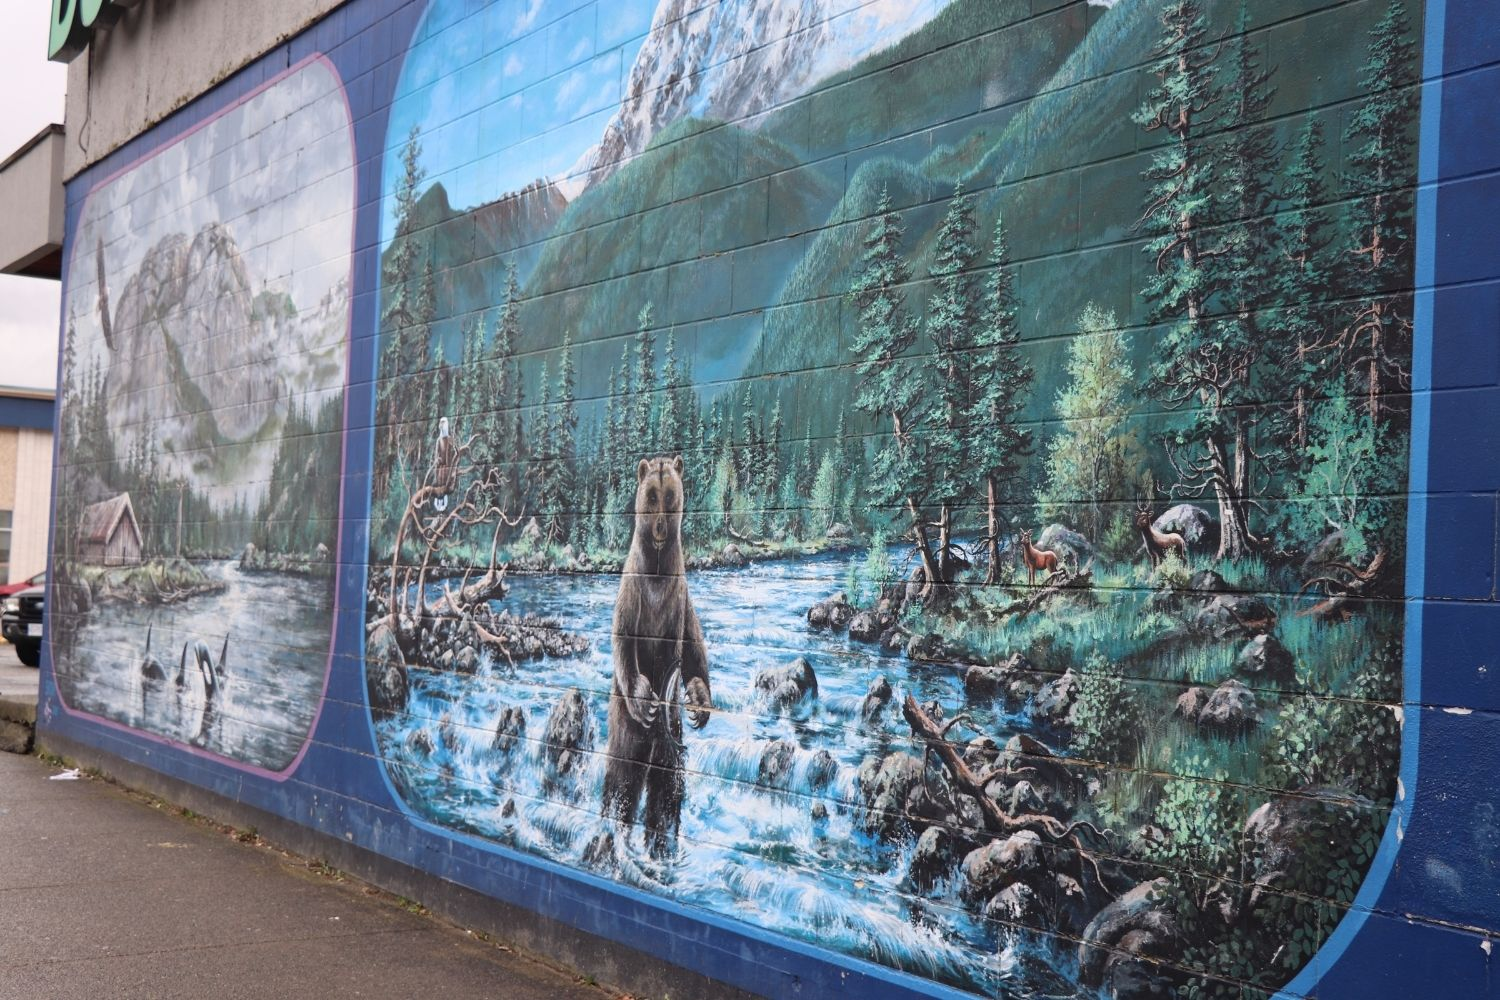 Downtown Squamish Mural